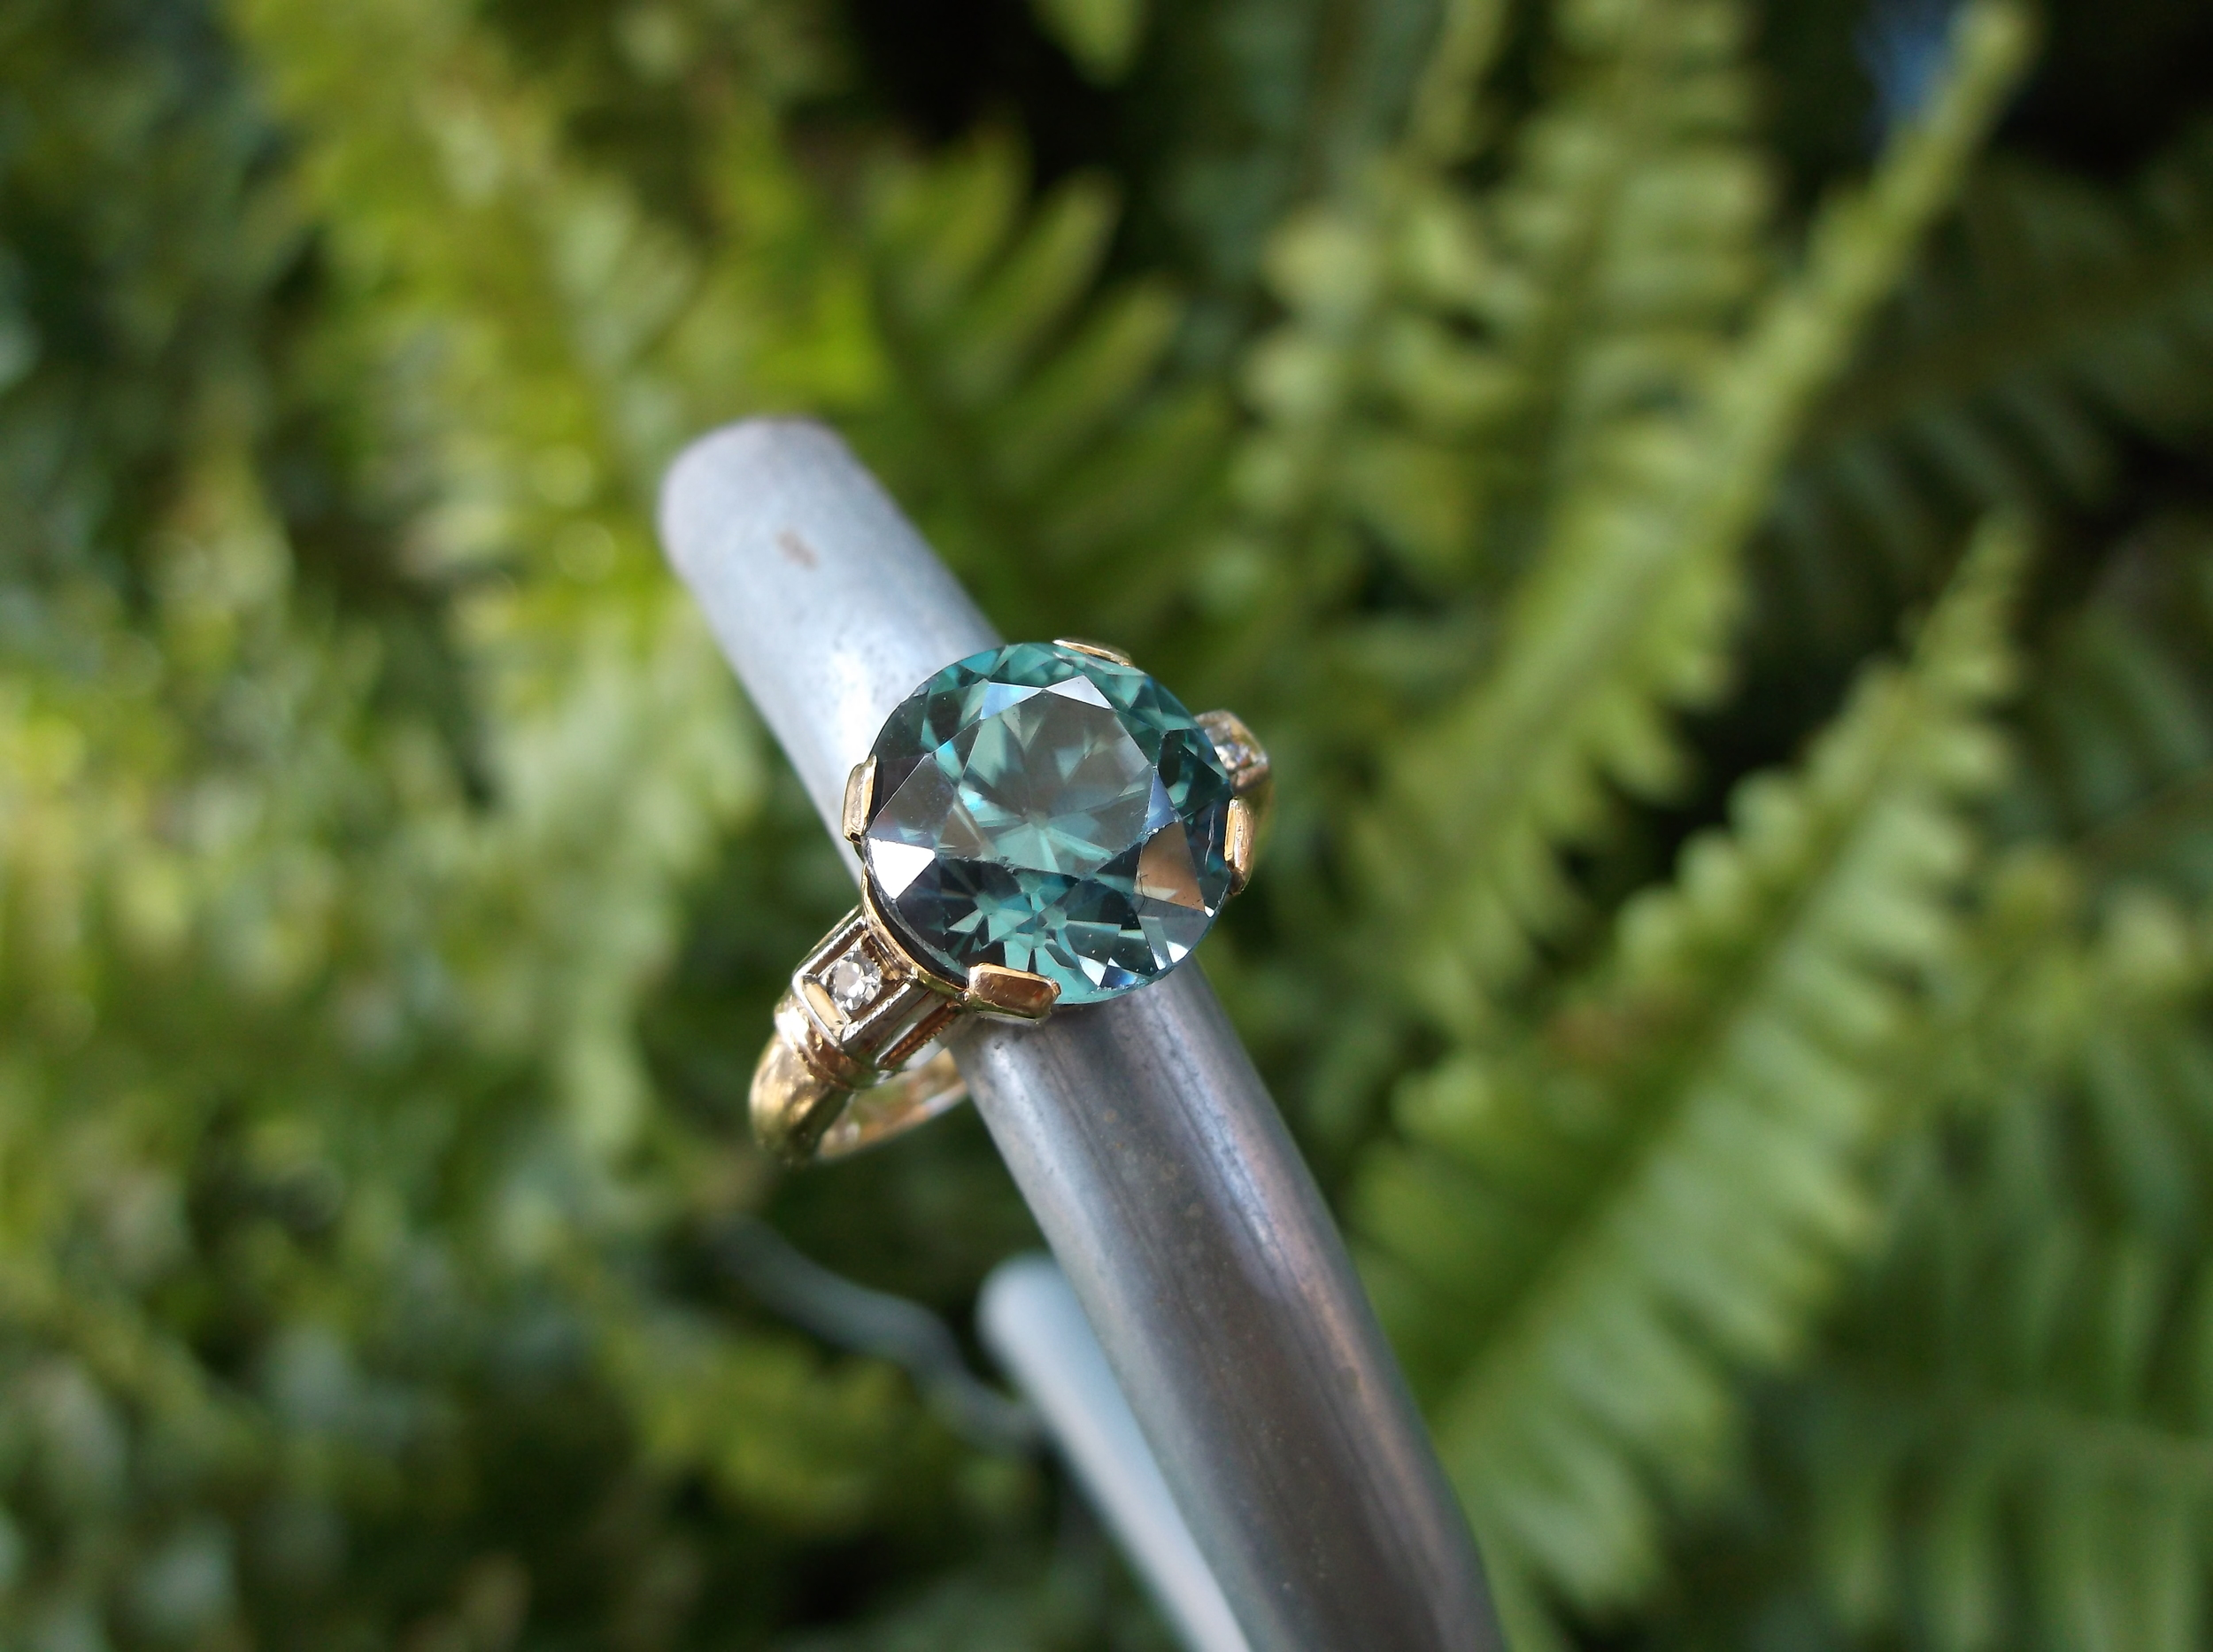 SOLD - Impressive 1940's Retro 4.50 carat blue zircon set in a rose gold and diamond setting!